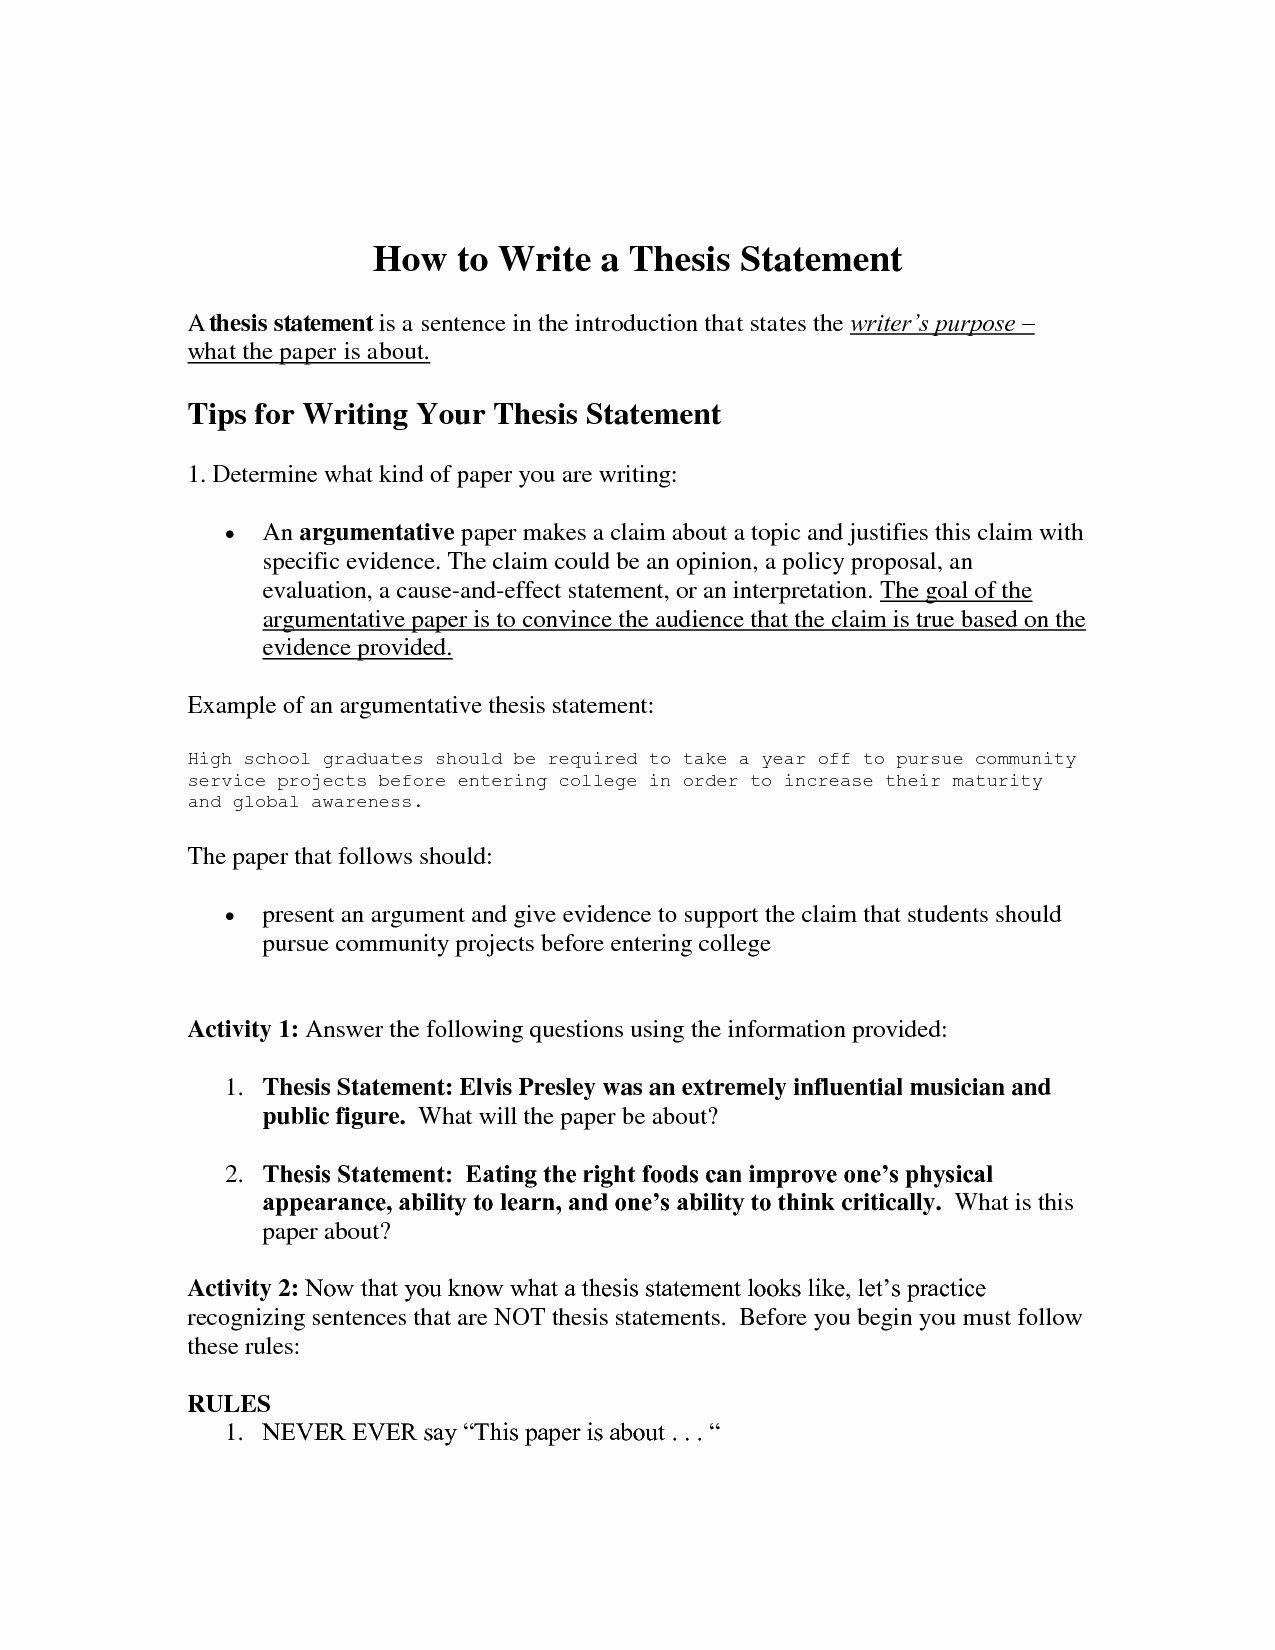 Thesis Statement Practice Worksheet Pin On Writing A thesis Statement